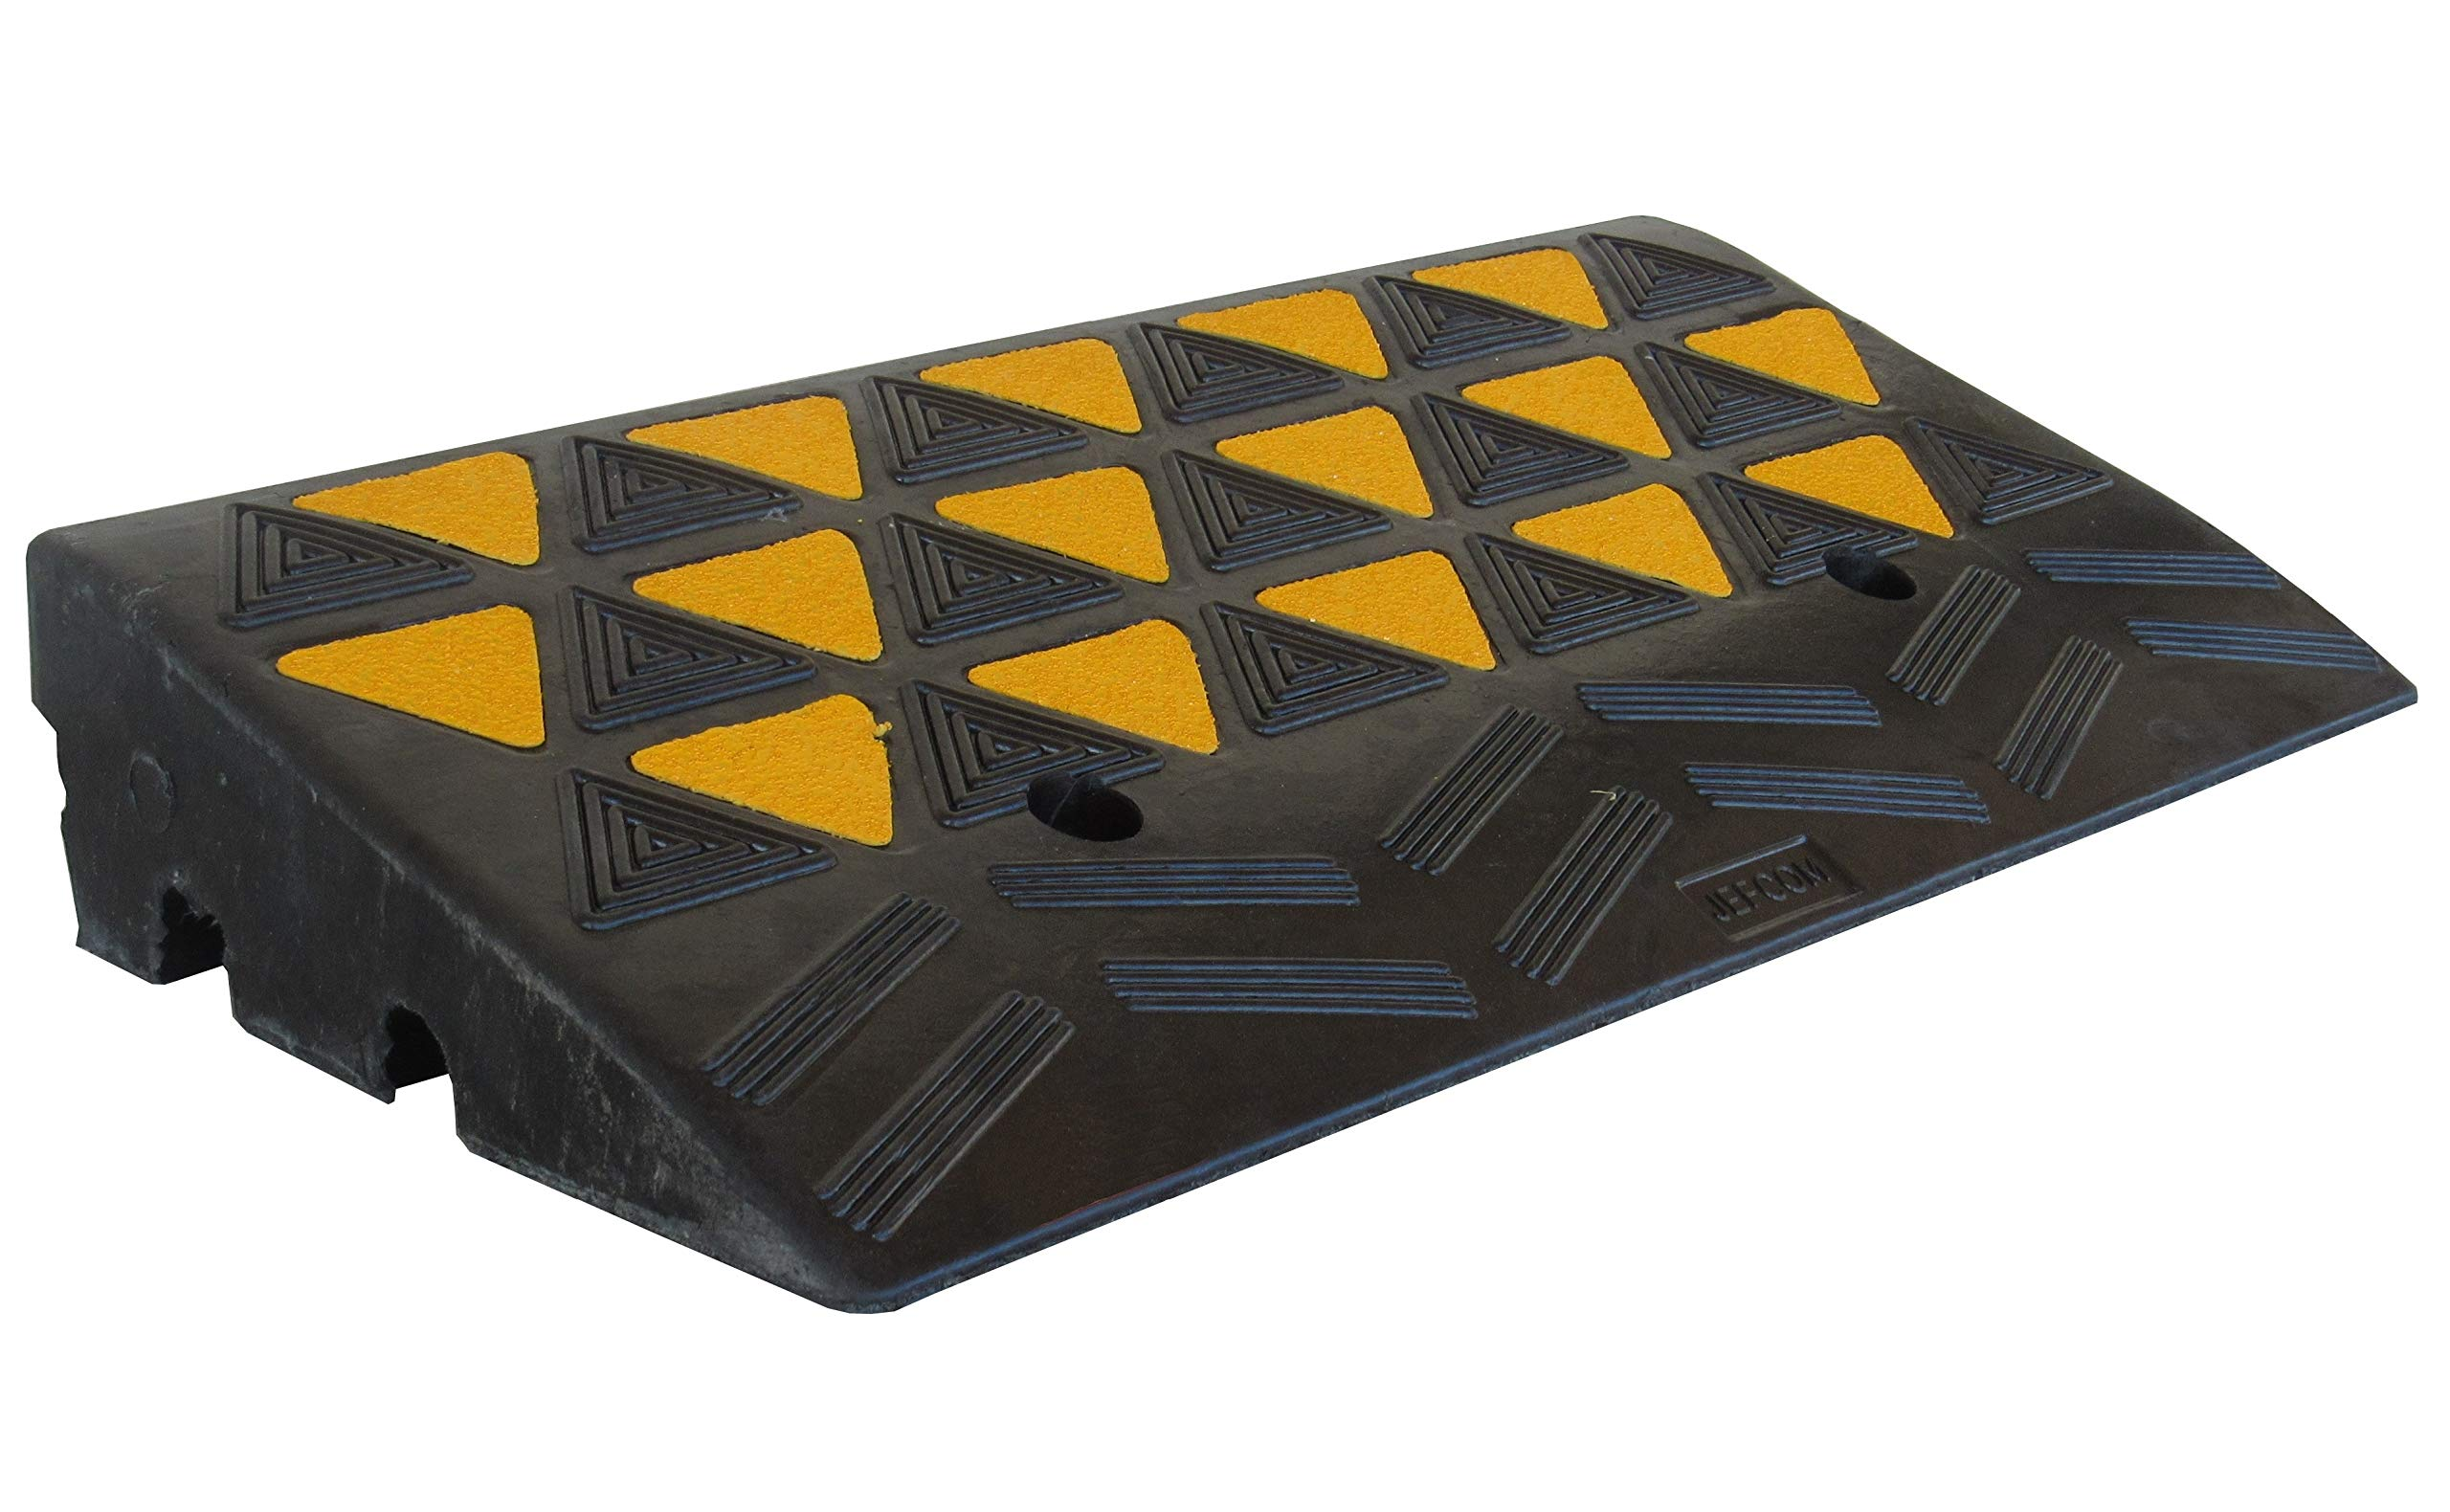 SNS SAFETY LTD RKR1Mx1 Rubber Curb Ramp Middle Part 11.8''L x 23.6''W x 3.9''H (Pack of 1)